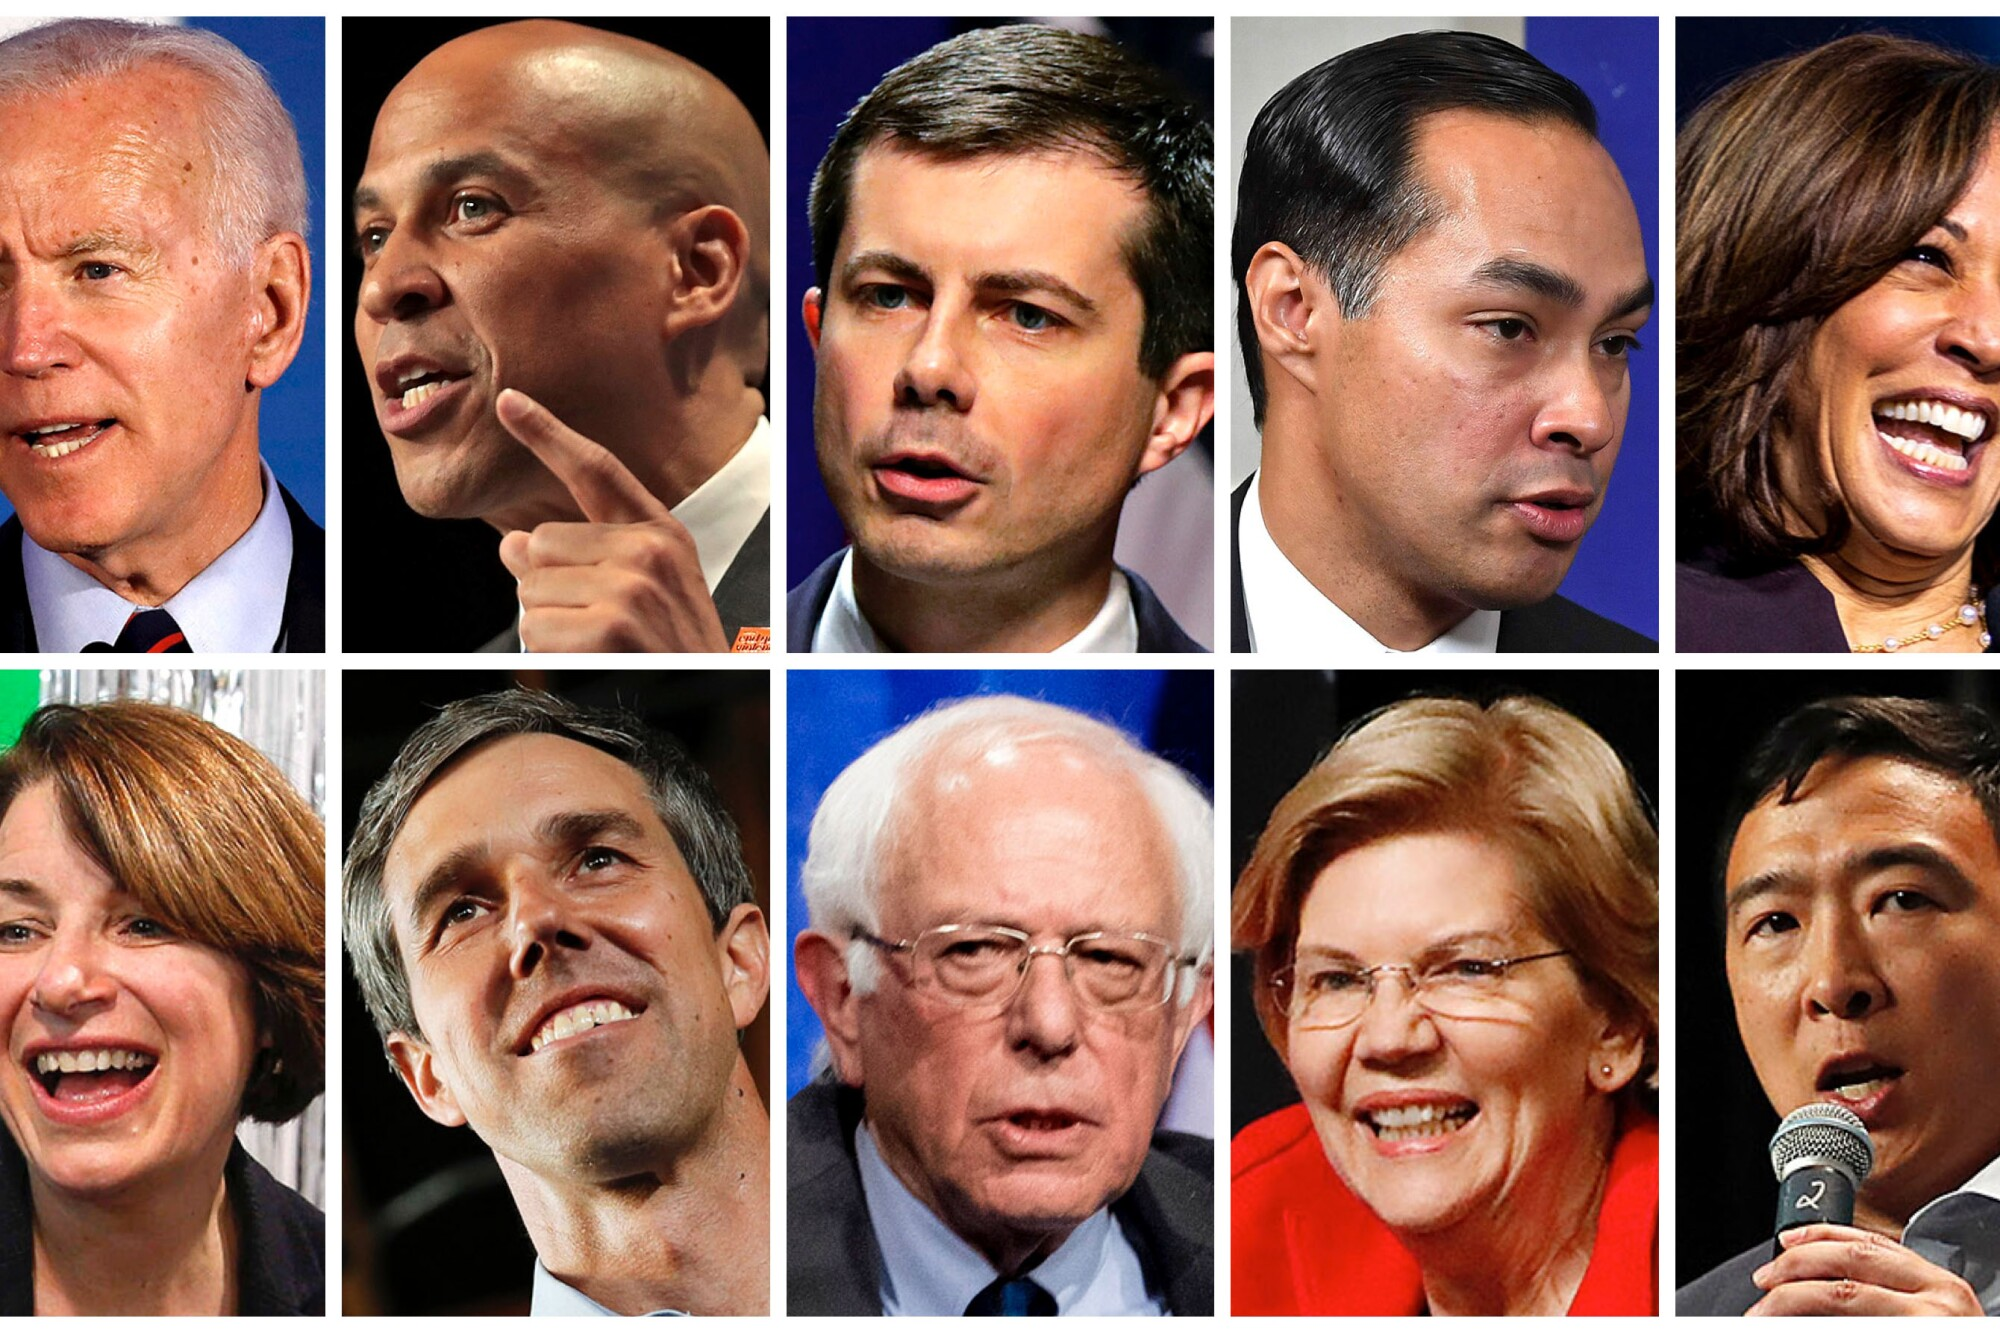 Ten contenders for the Democratic presidential nomination will appear onstage for the third primary debate. Top row, from left: former Vice President Joe Biden; New Jersey Sen. Cory Booker; South Bend, Ind., Mayor Pete Buttigieg; former Housing Secretary Julián Castro; California Sen. Kamala Harris. Bottom row, from left: Minnesota Sen. Amy Klobuchar; former Texas Rep. Beto O'Rourke; Vermont Sen. Bernie Sanders; Massachusetts Sen. Elizabeth Warren; entrepreneur Andrew Yang.